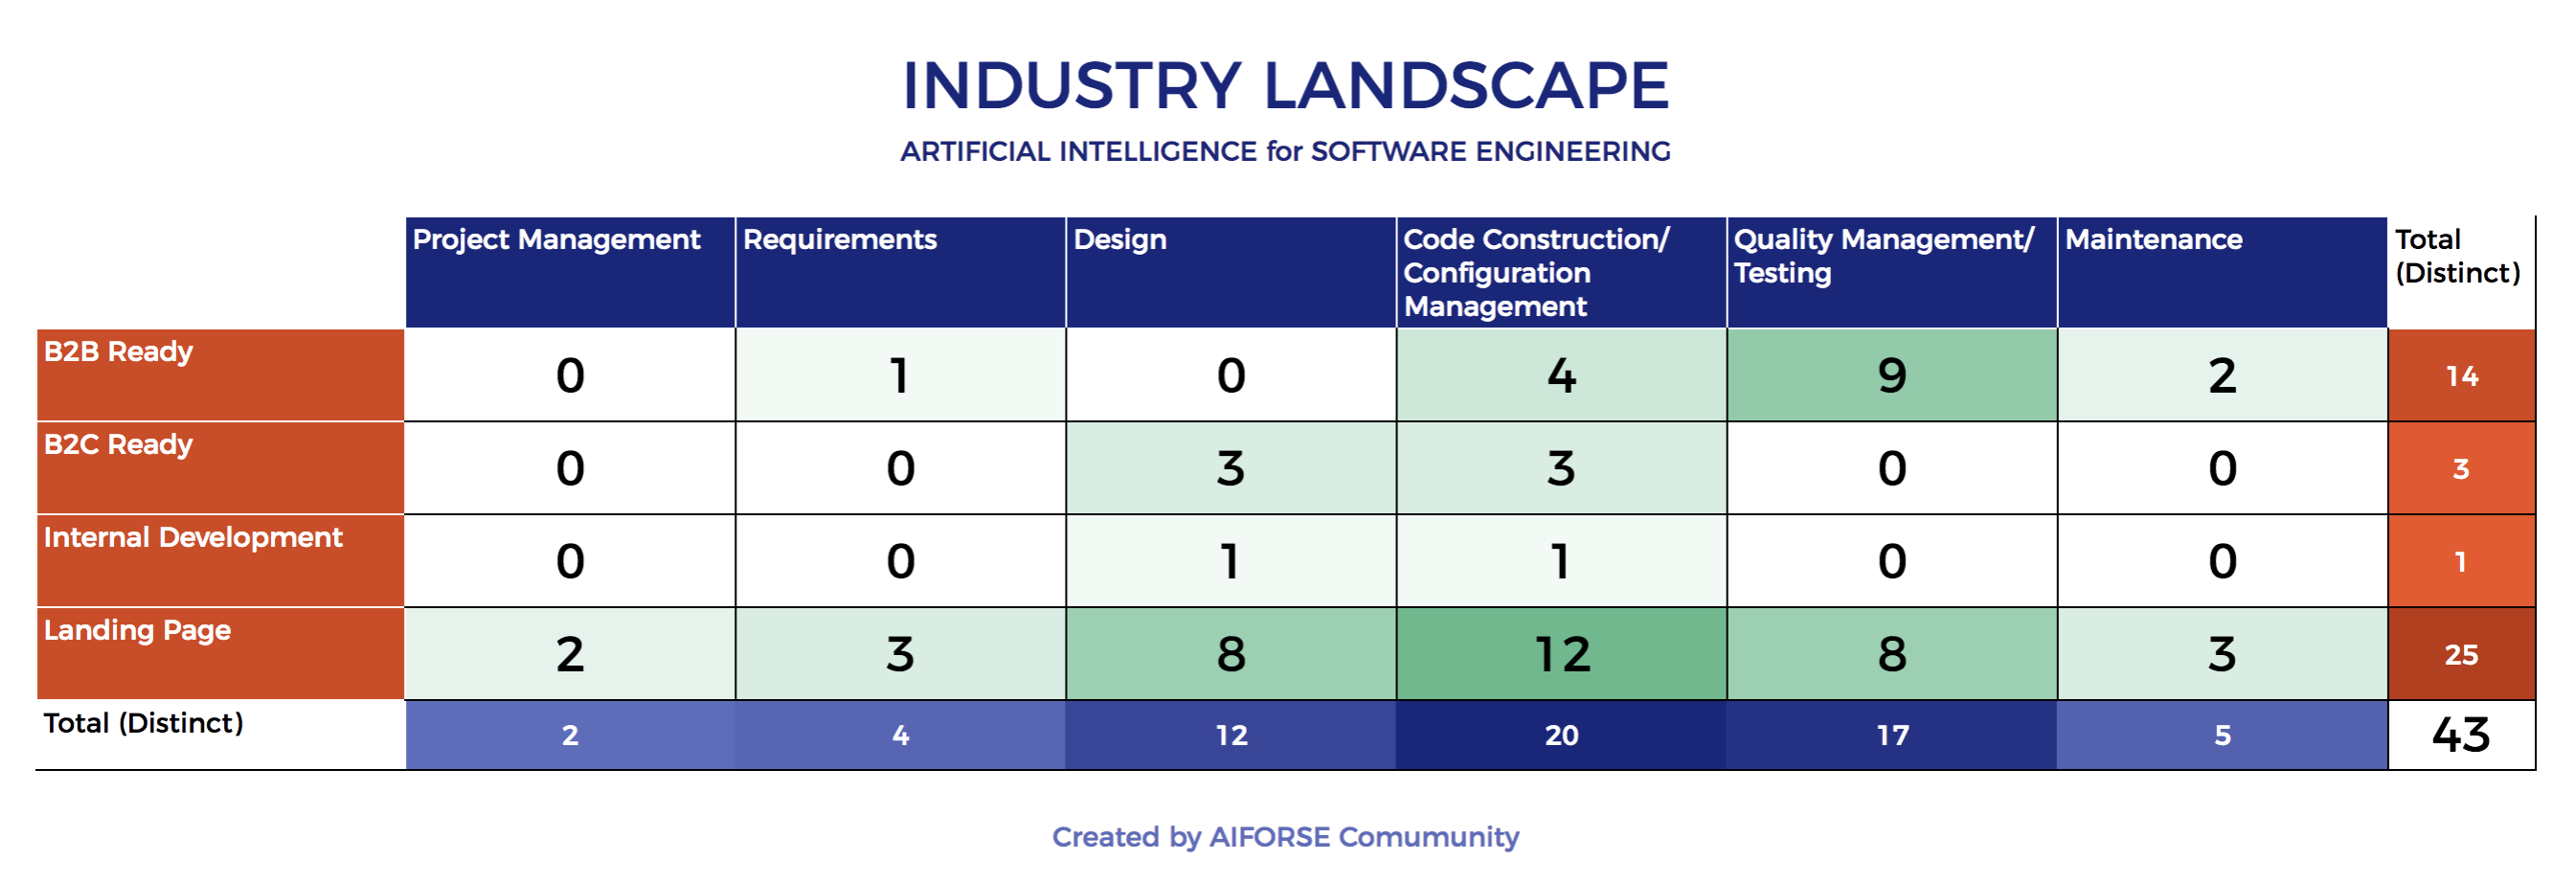 AI for Software Engineering — Industry Landscape (12/Aug/2018)